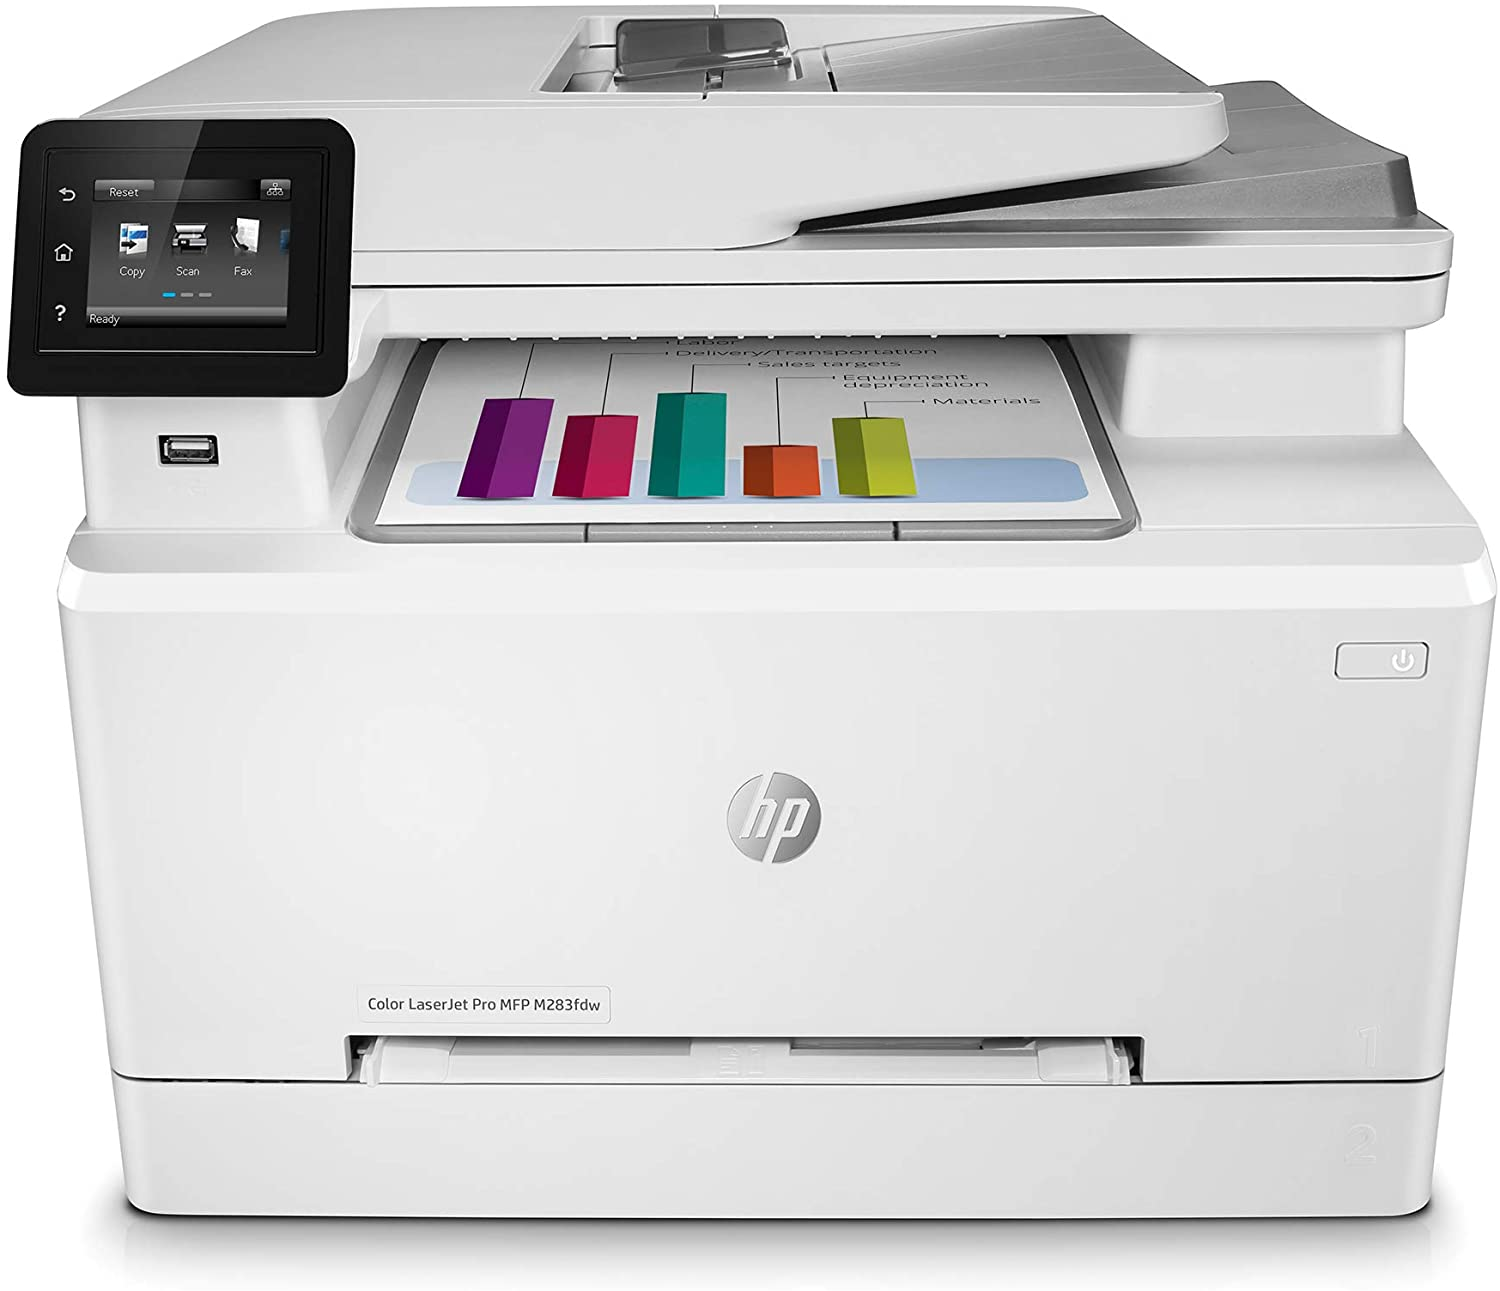 MFP M283fdw Color LaserJet Pro Printer White_2